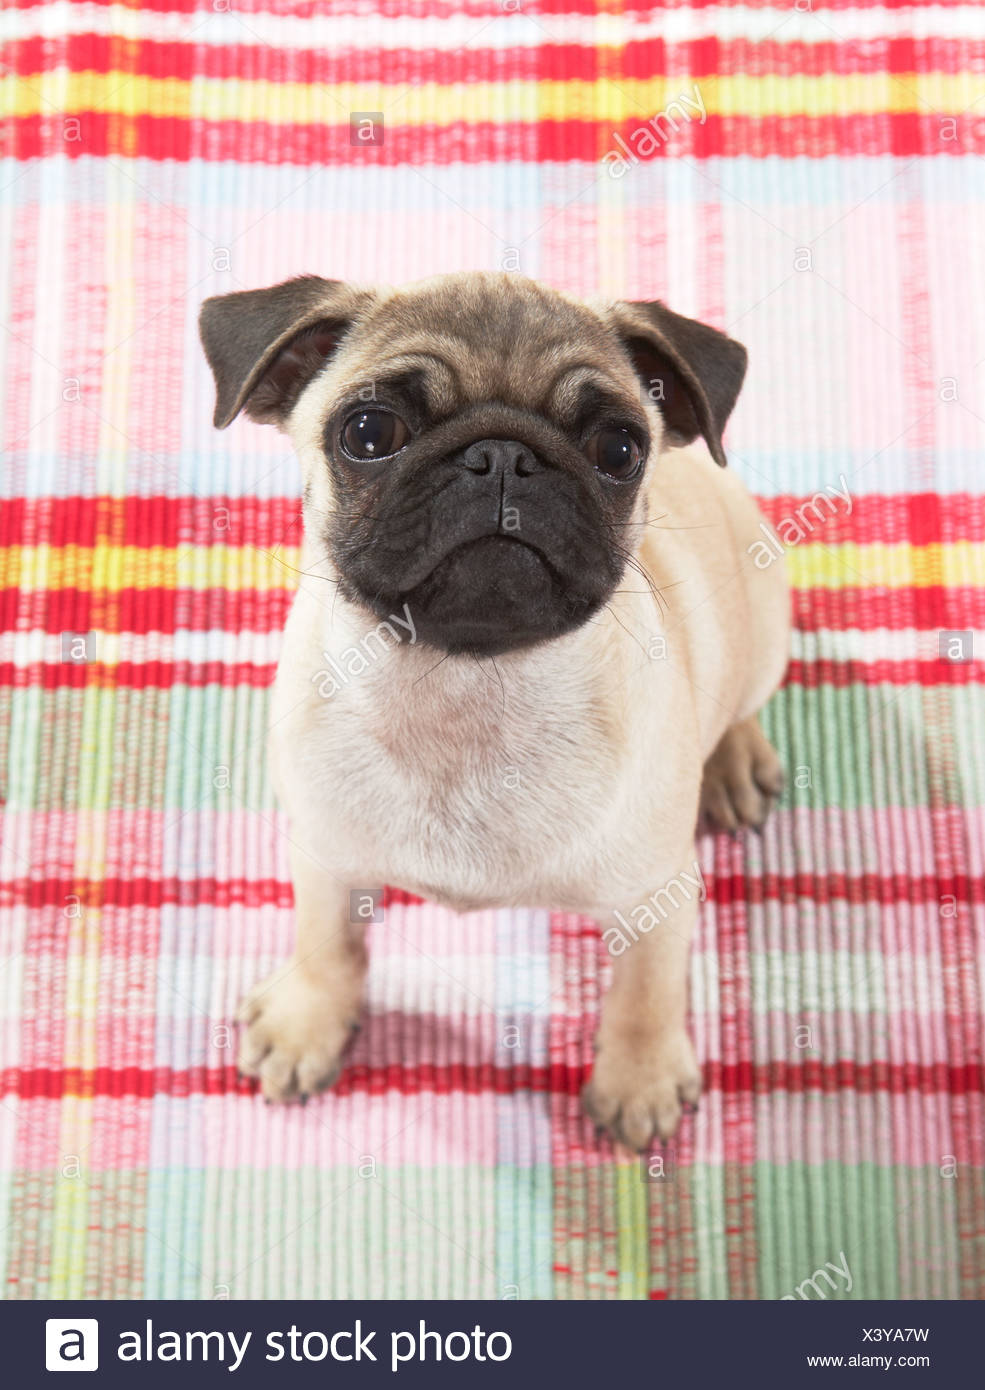 pug dog - puppy - sitting Stock Photo